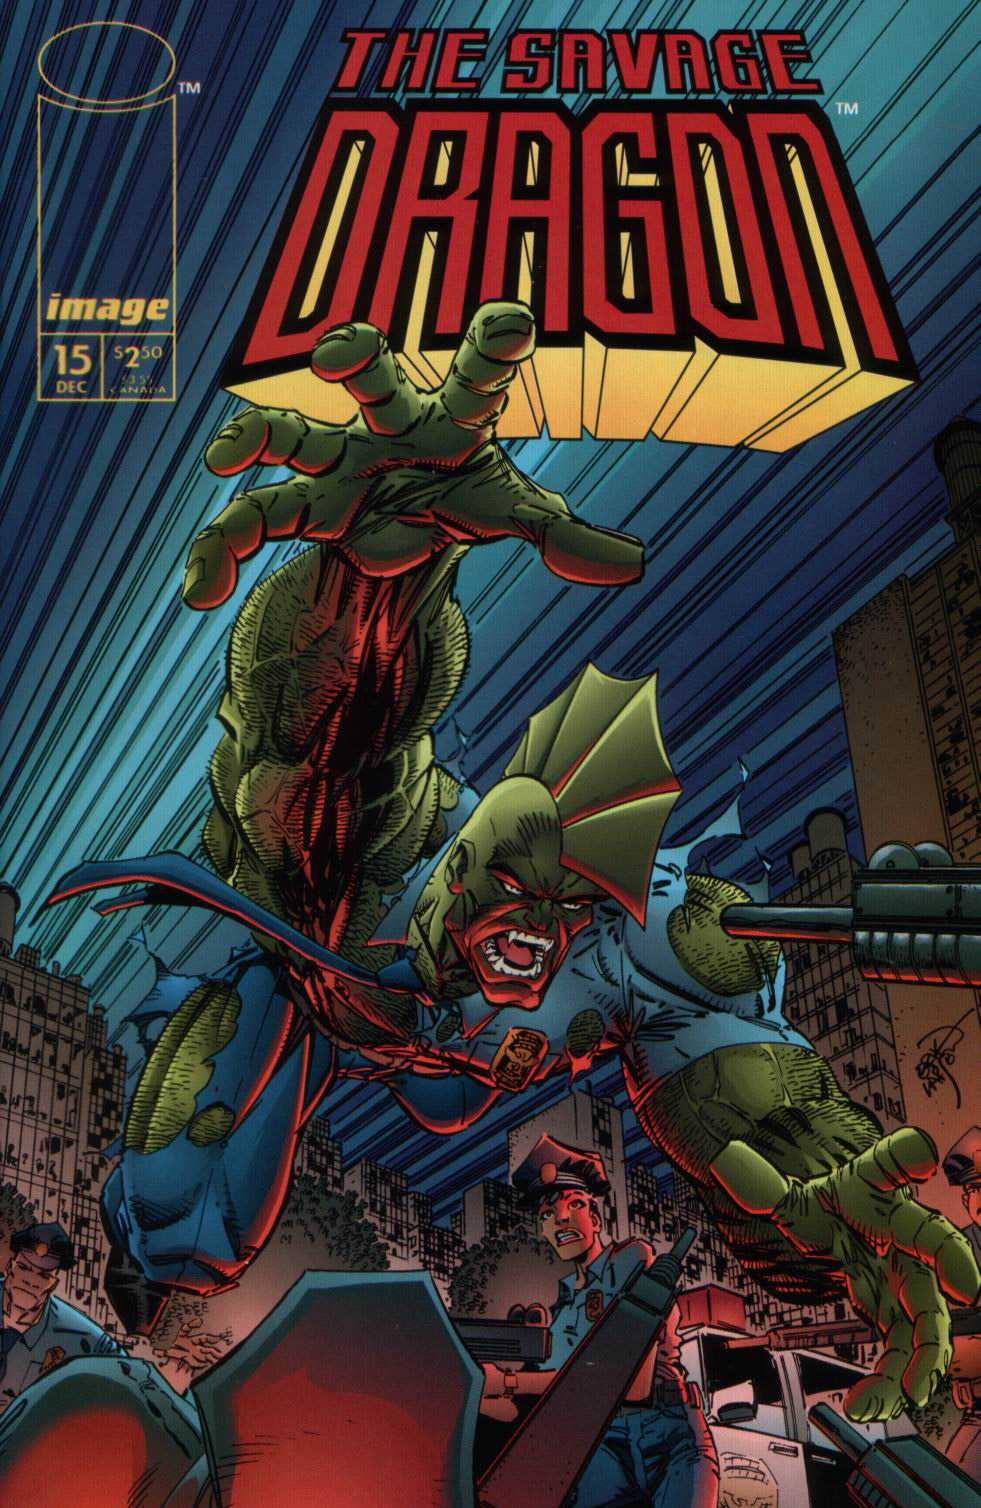 Cover Savage Dragon Vol.2 #15